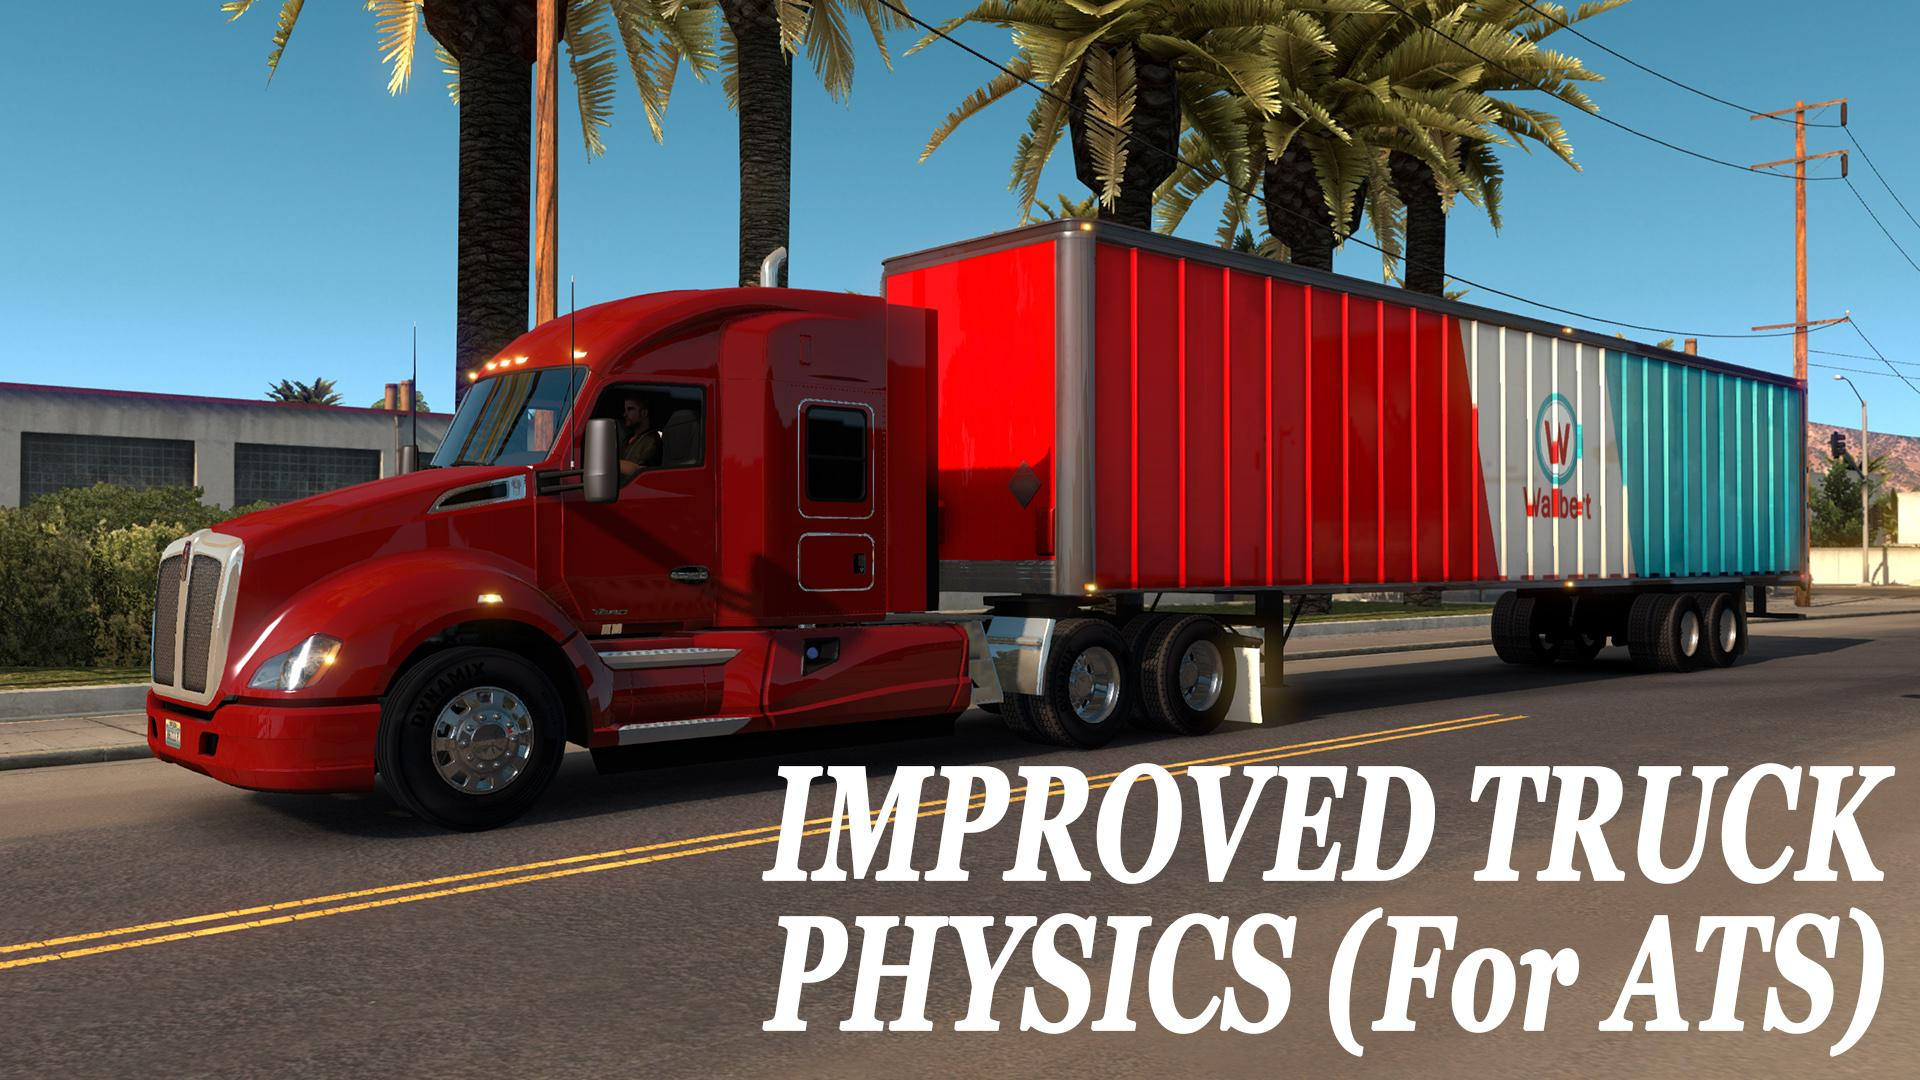 Improved truck physics v1.0